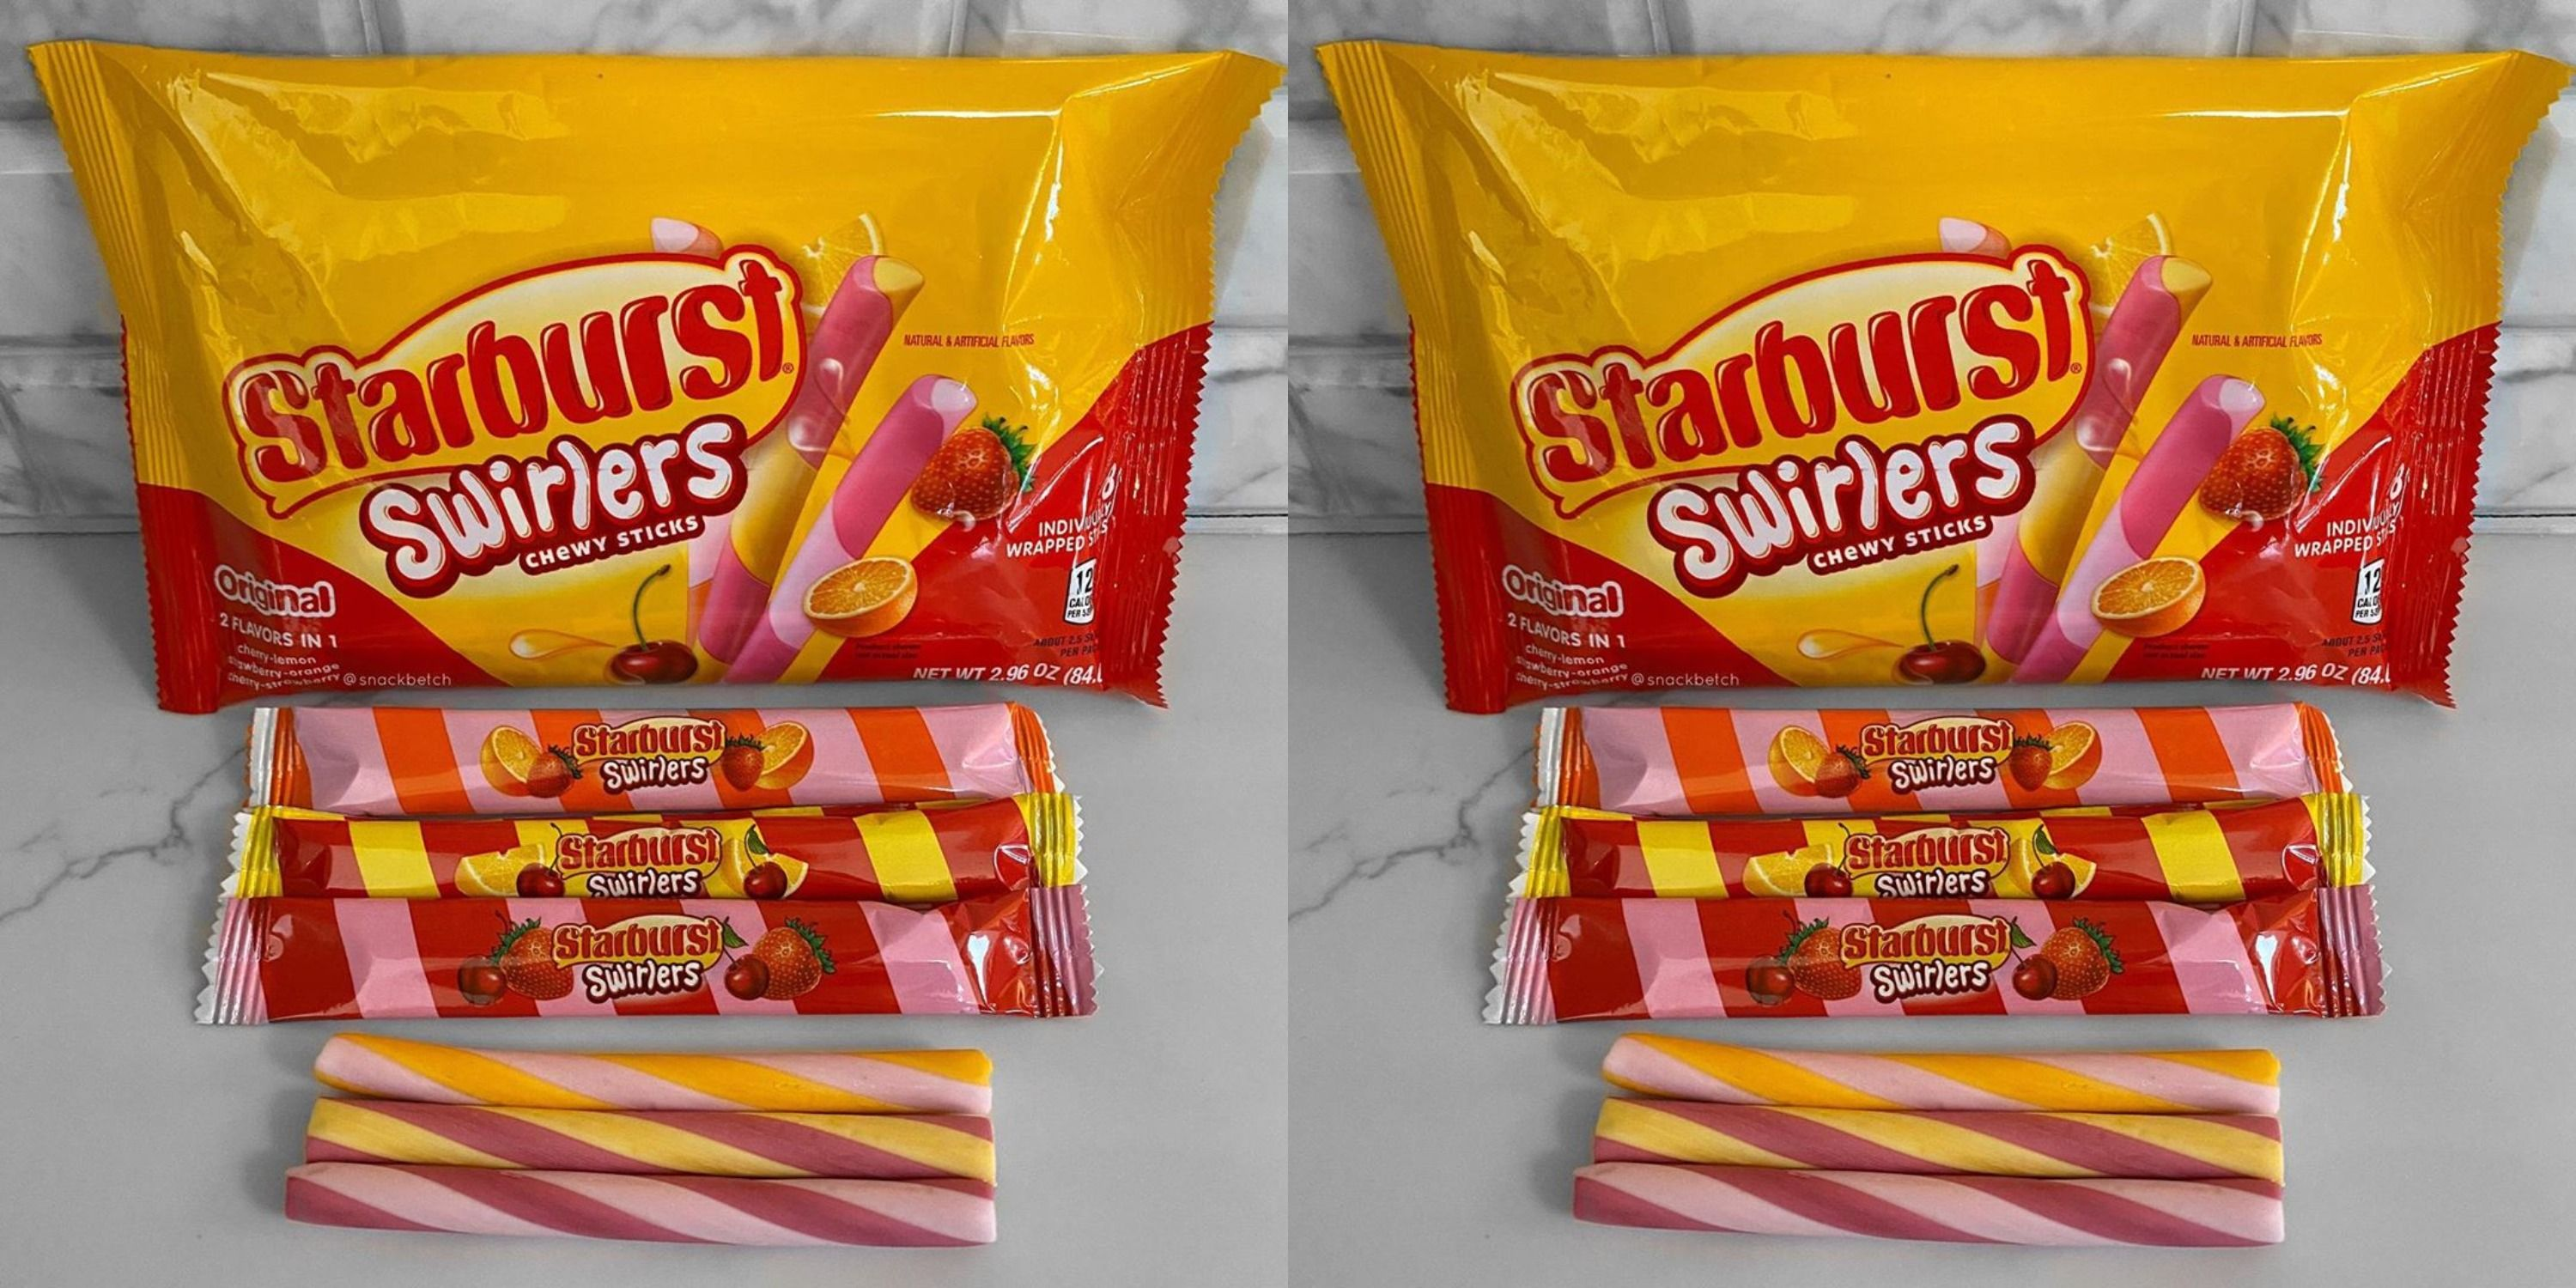 Starburst Swirlers Combine Flavors In One Candy